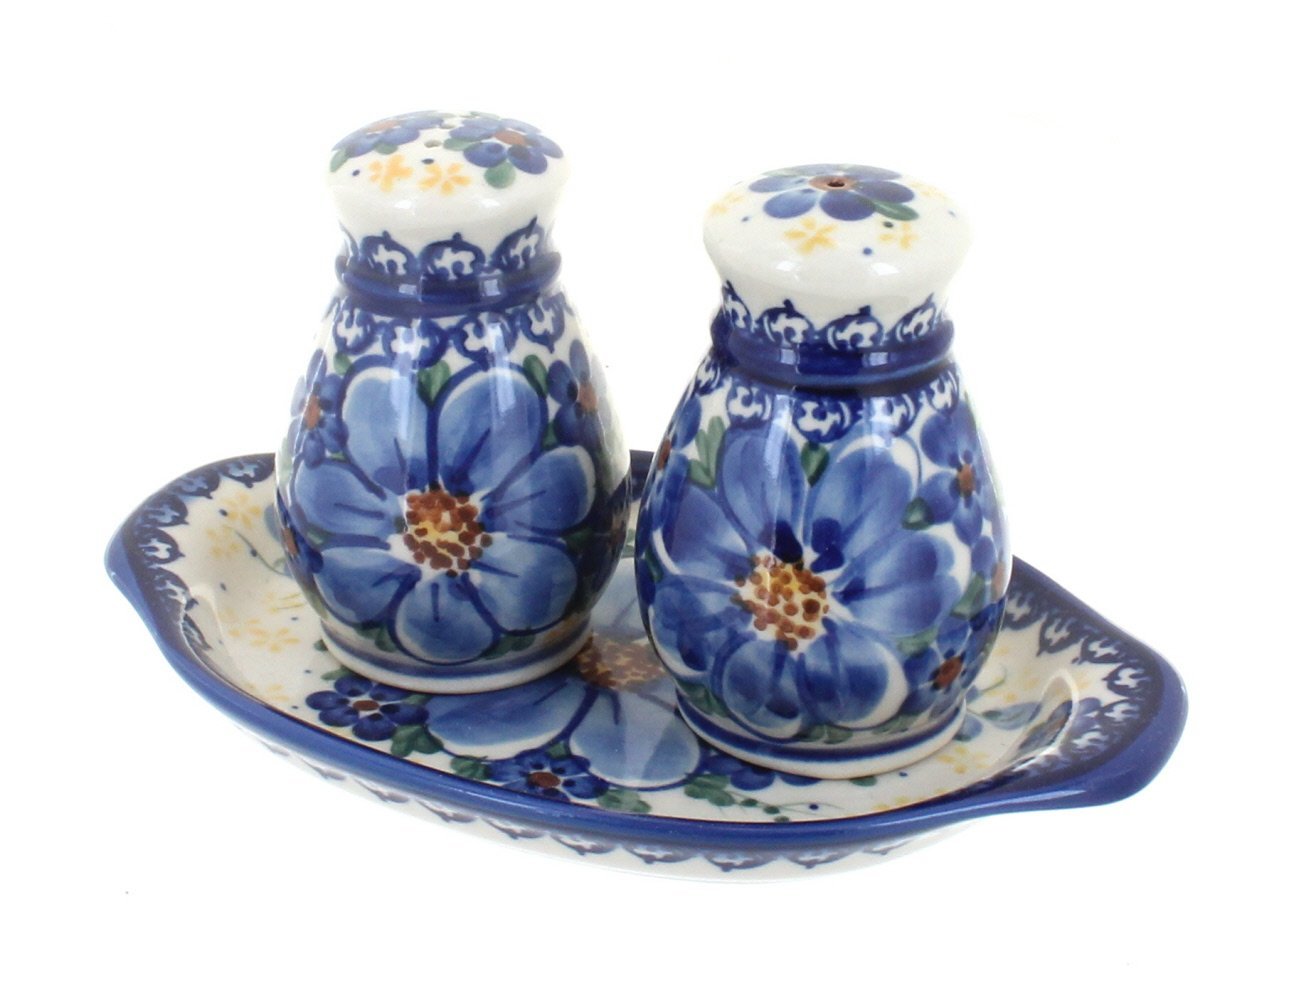 Polish Pottery Daisy Surprise Salt & Pepper Shakers with Tray by Blue Rose Pottery